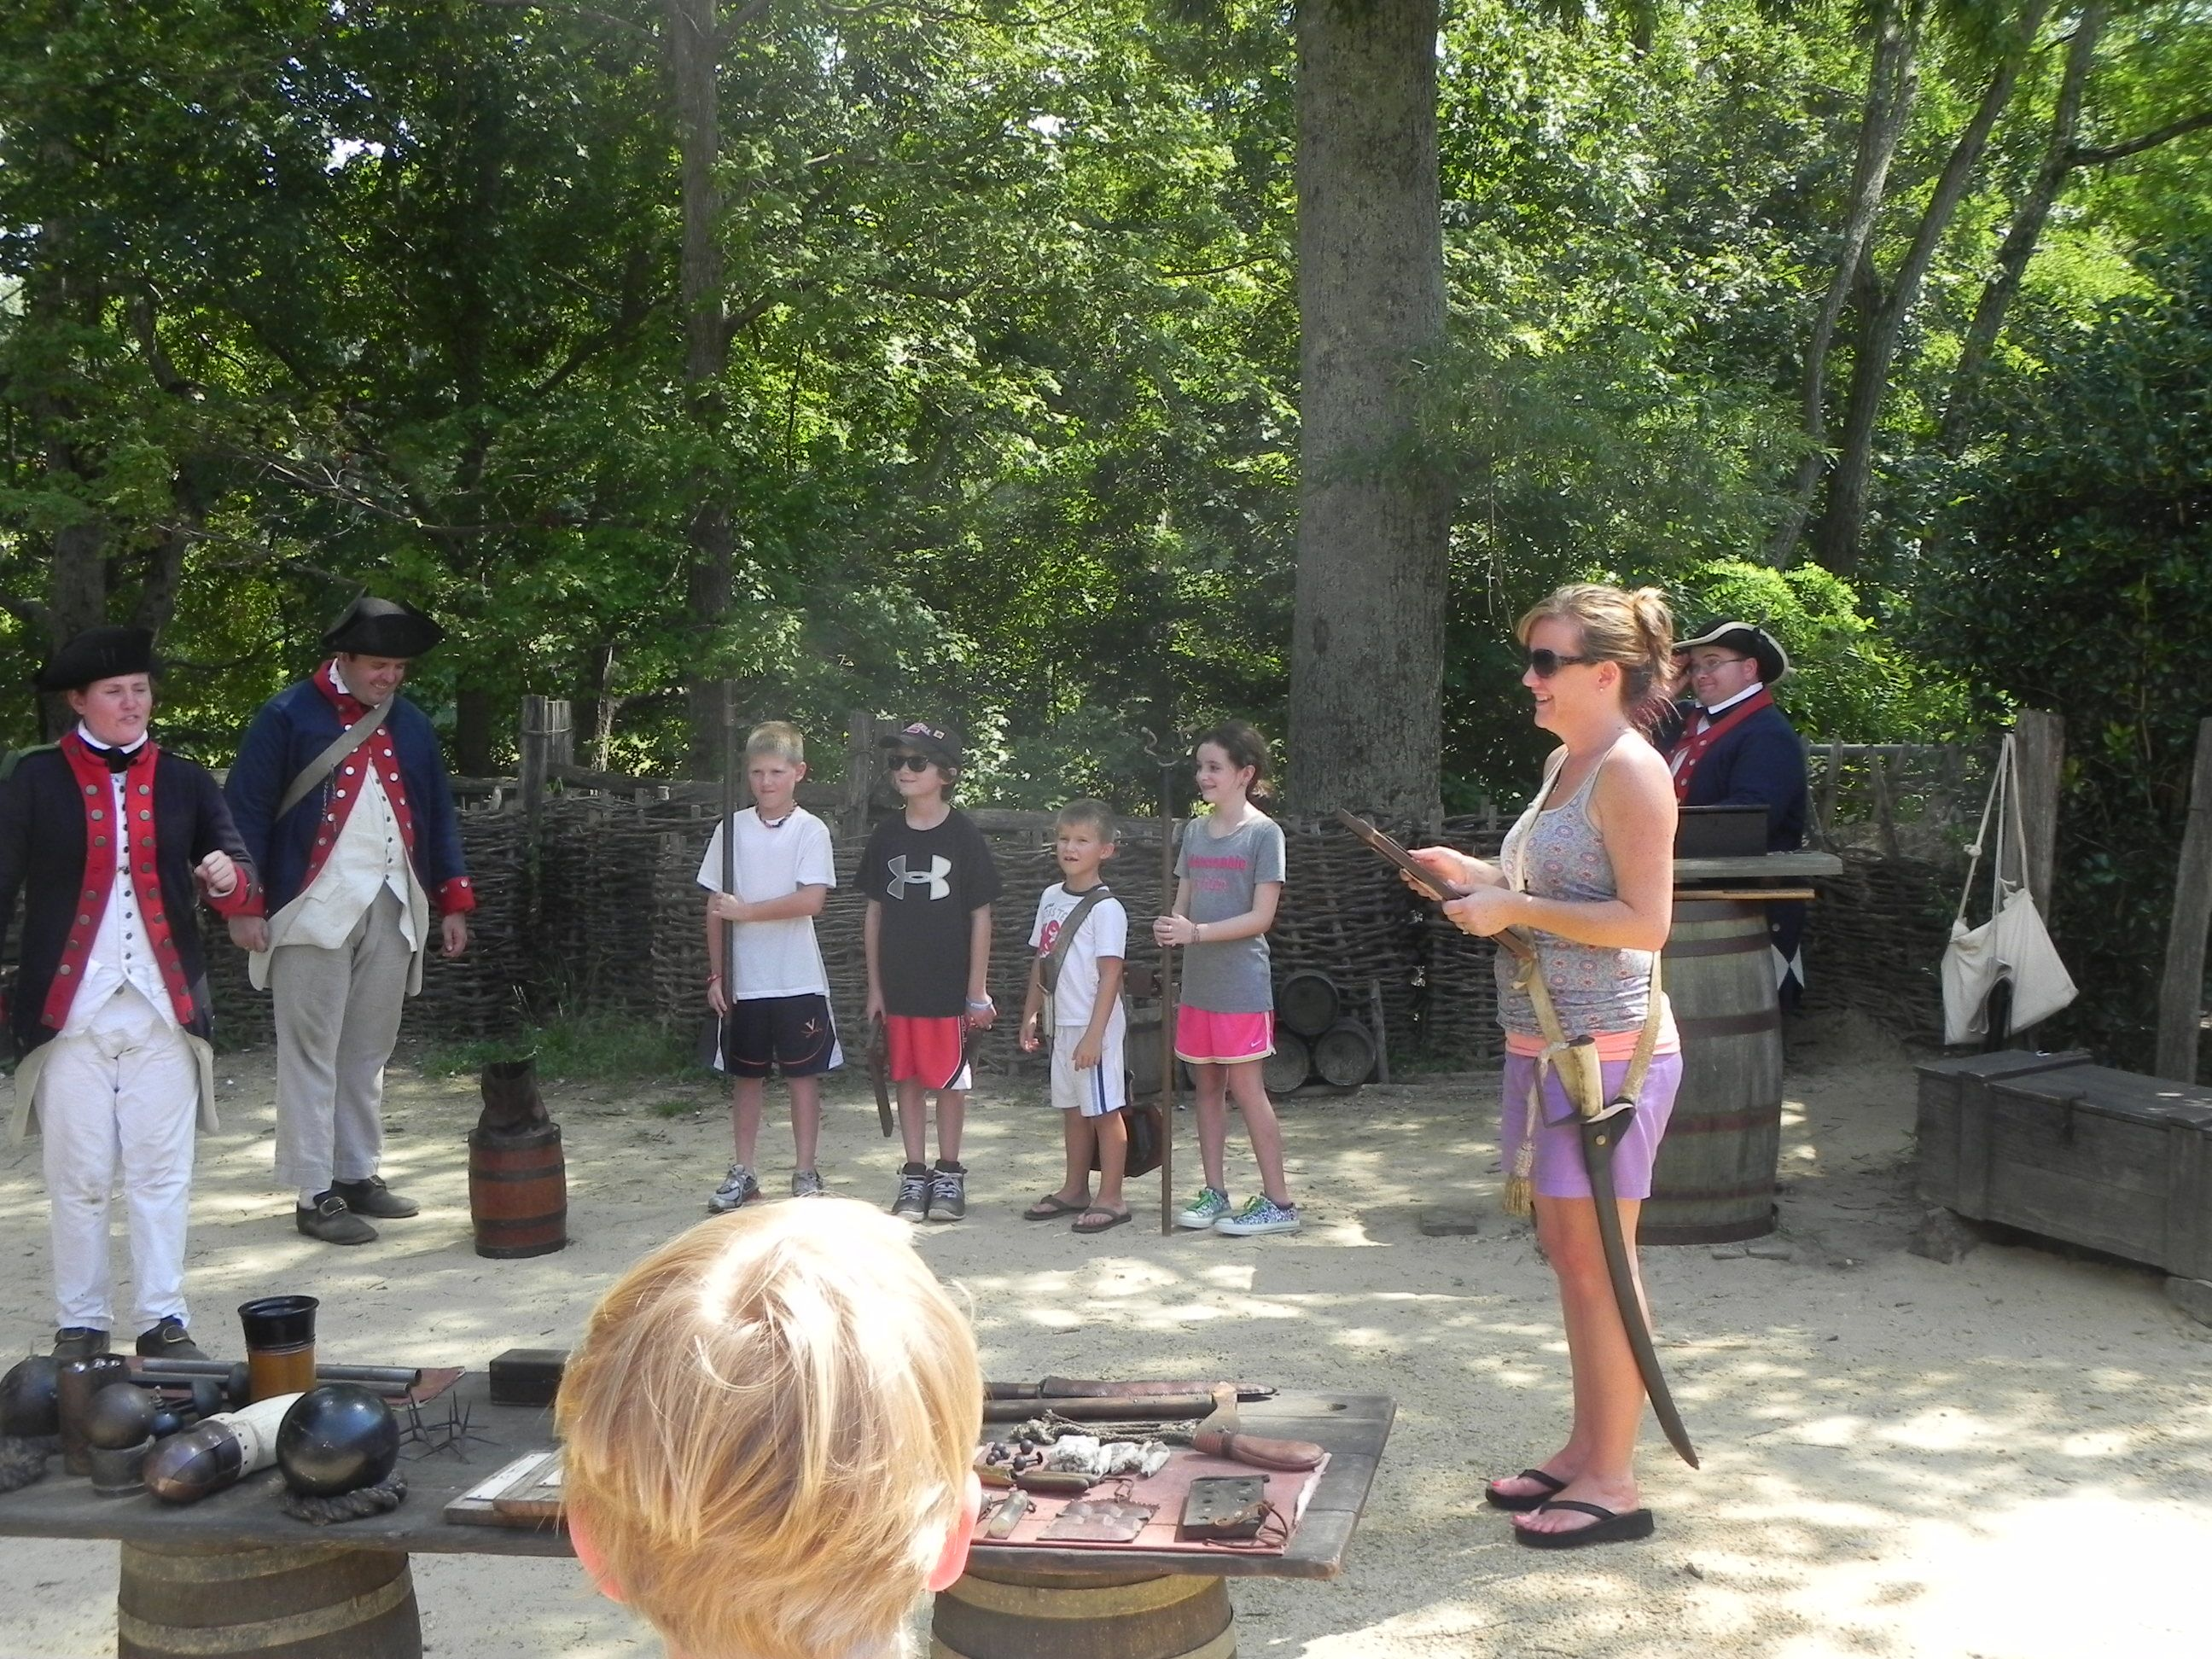 More Interpreters Join The Party As The Kids Learn About Firing The Cannon